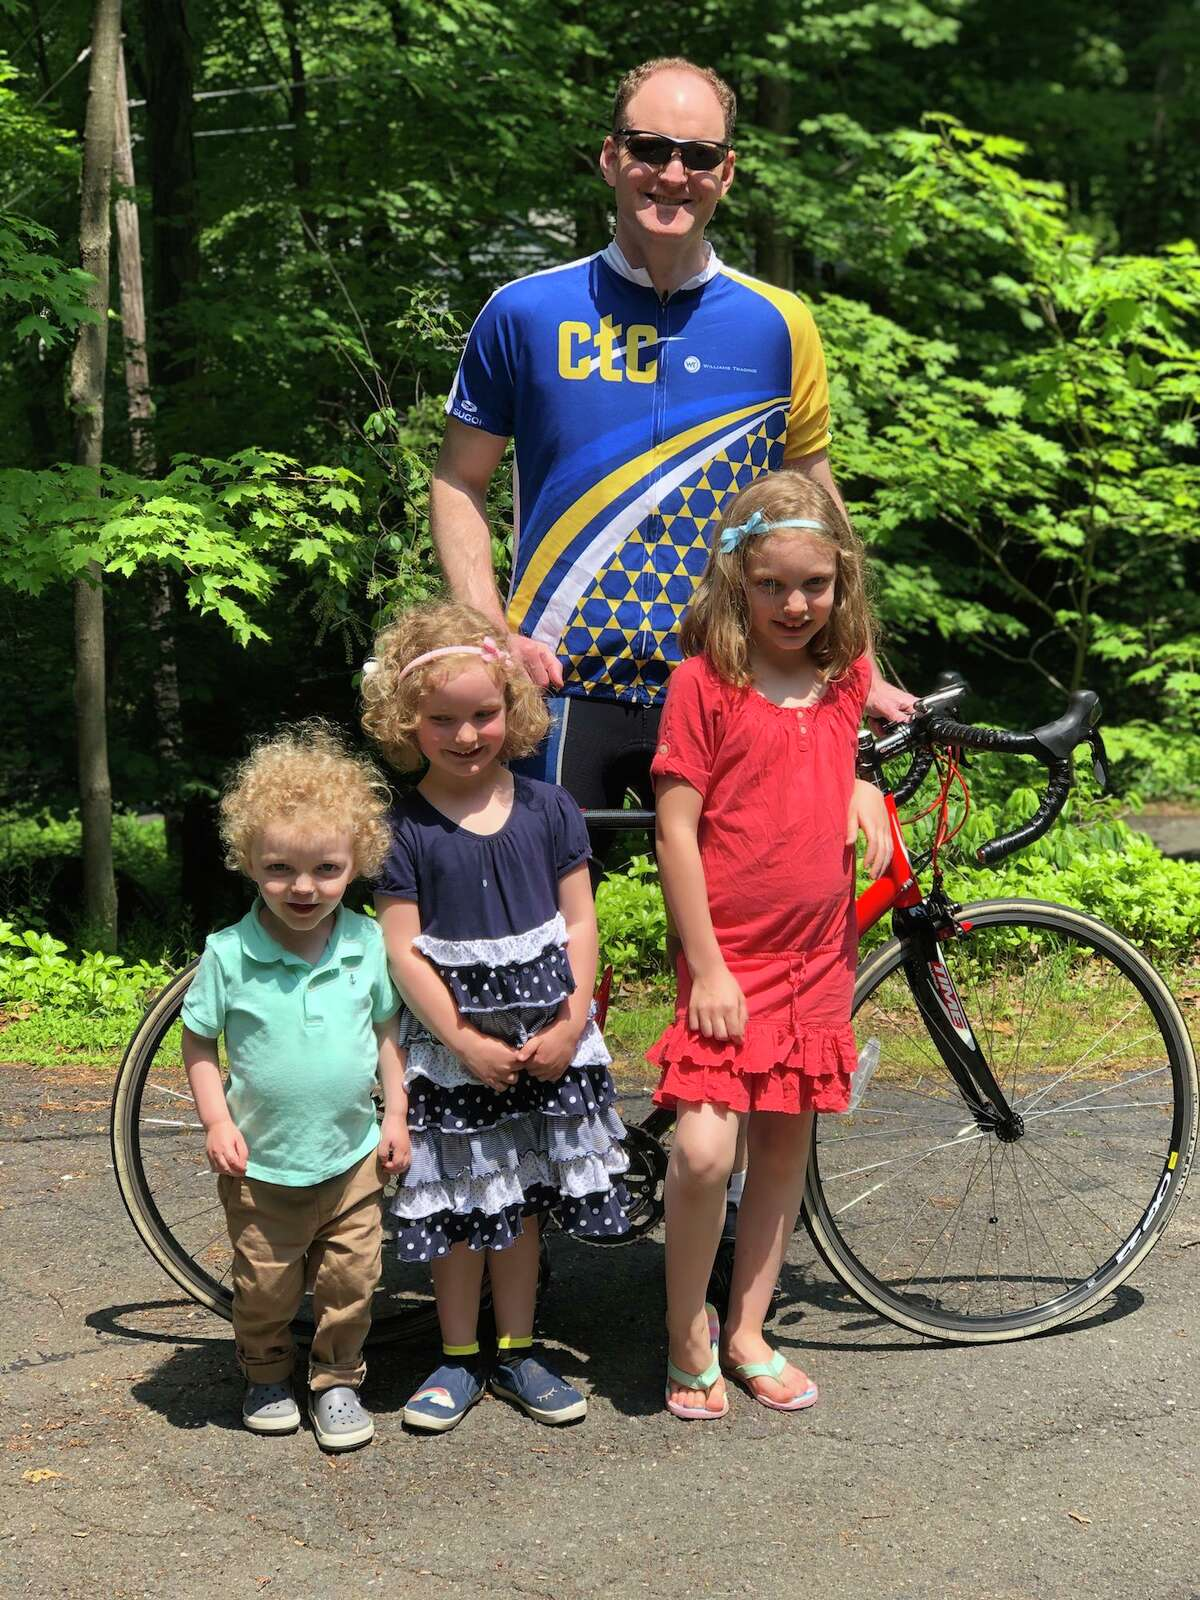 Ridgefielder Paul Fitzpatrick with his three children. On July 27, he willcycle 100 miles to raise$10,000 for the CT Challenge -a nonprofit organization dedicated to helping the 15.5 million cancer survivors in Connecticut and throughout the U.S.